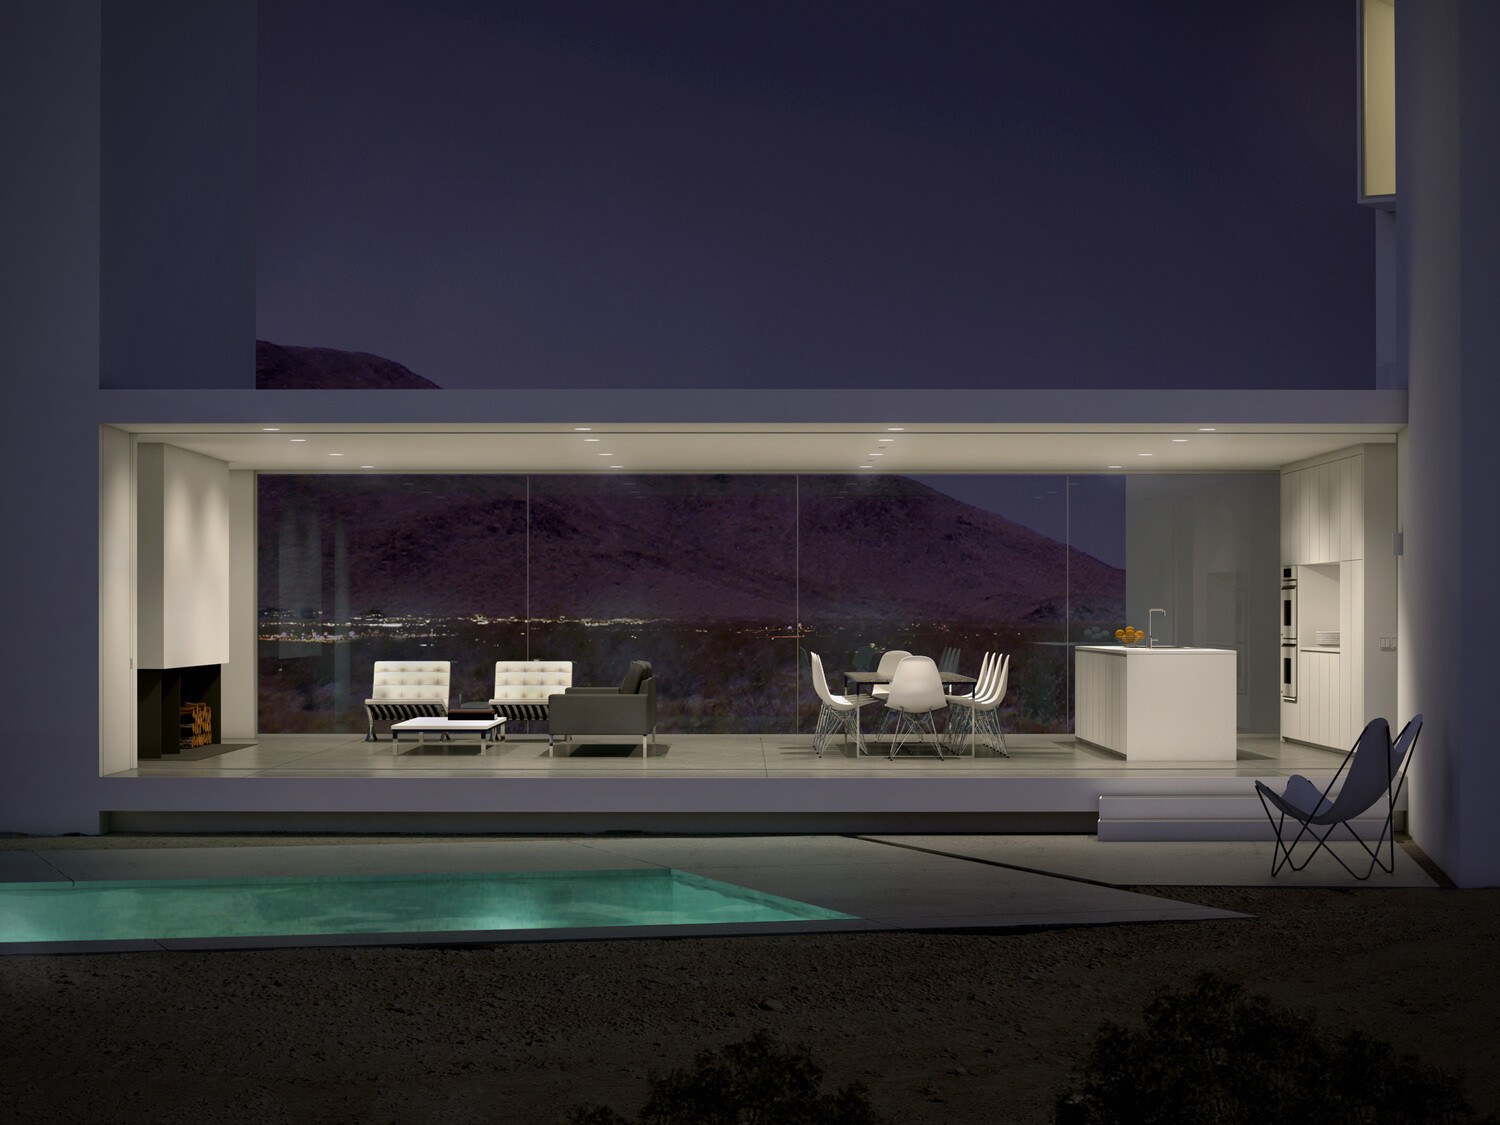 Contemporary architecture and a night in the desert, by Edward Ogosta